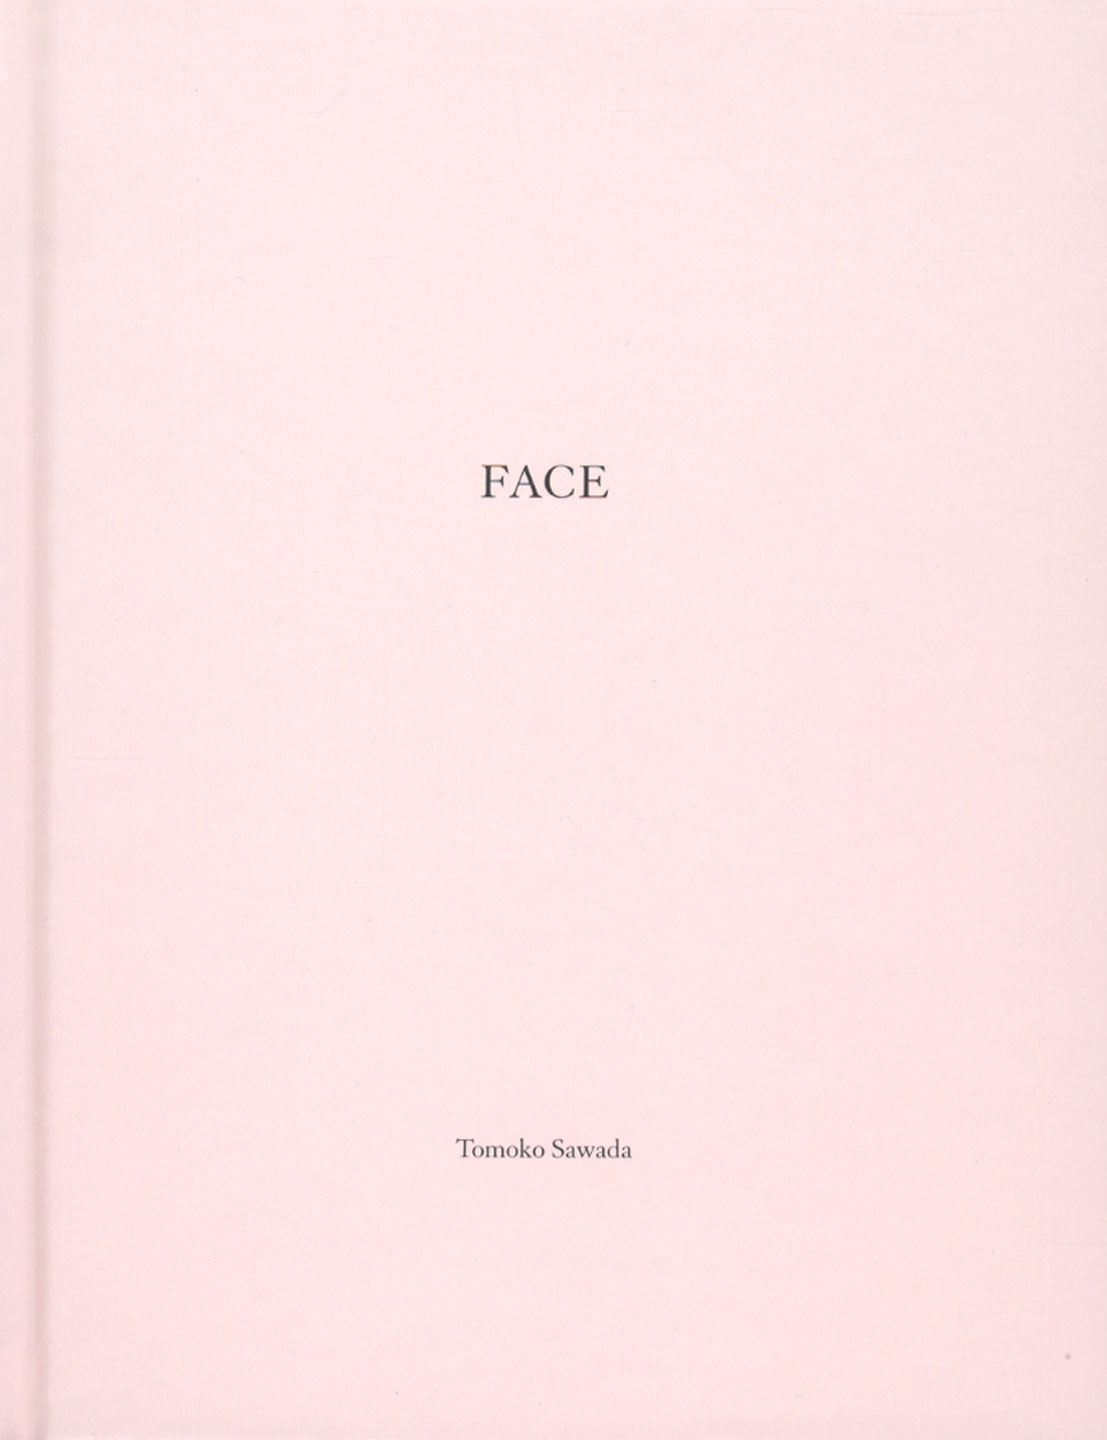 Tomoko Sawada: Face (One Picture Book #99), Limited Edition (with Print Variant 5 of 12)